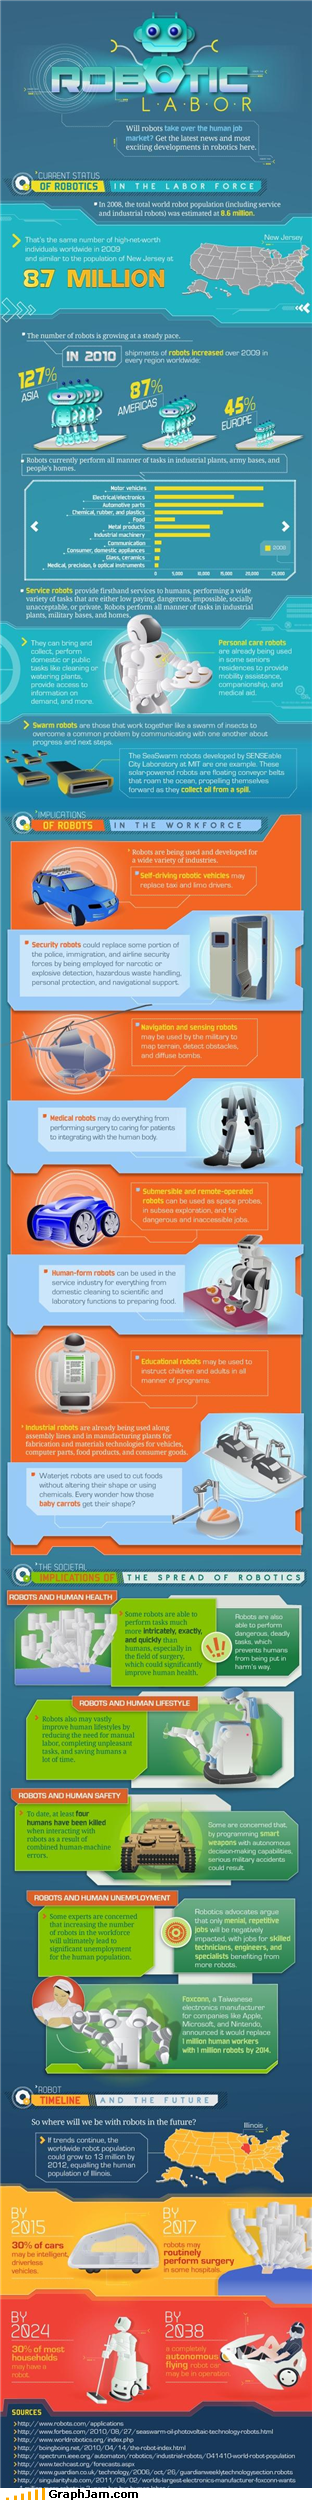 infographic interesting labor robots